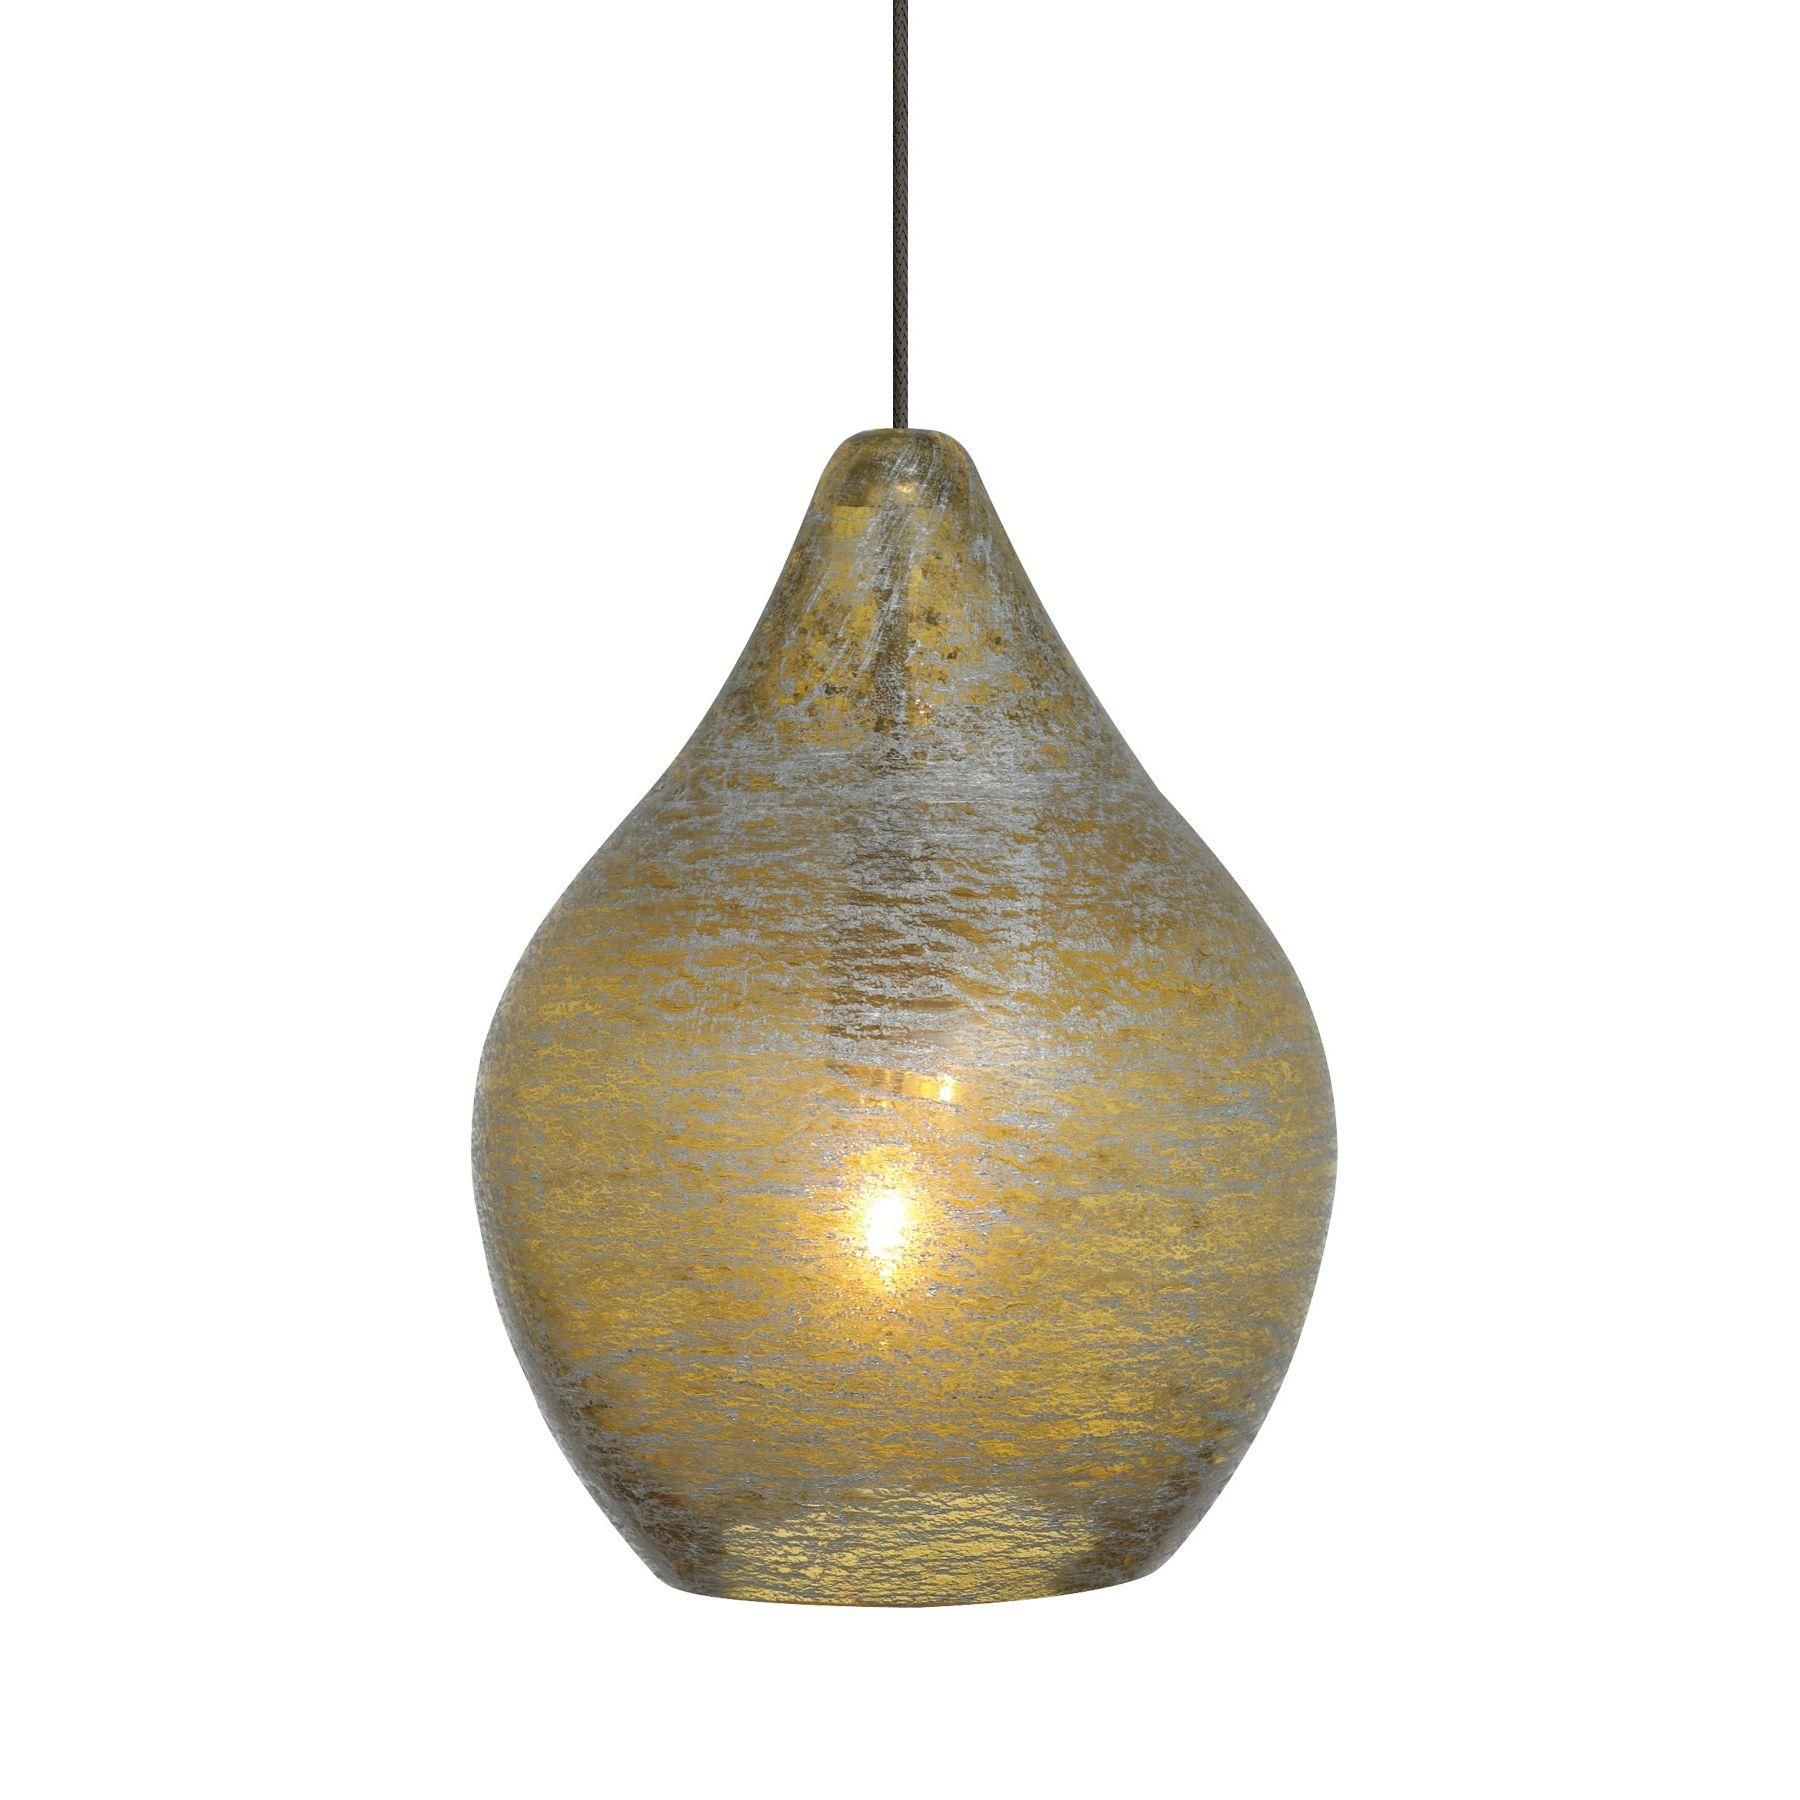 Pear Shaped Glass Shade With Playful Silver Accents Includes 1 35 Watt Low Voltage Gy6 35 Base Xenon Bi Pin Lamp And Lbl Lighting Pendant Light Light Satin